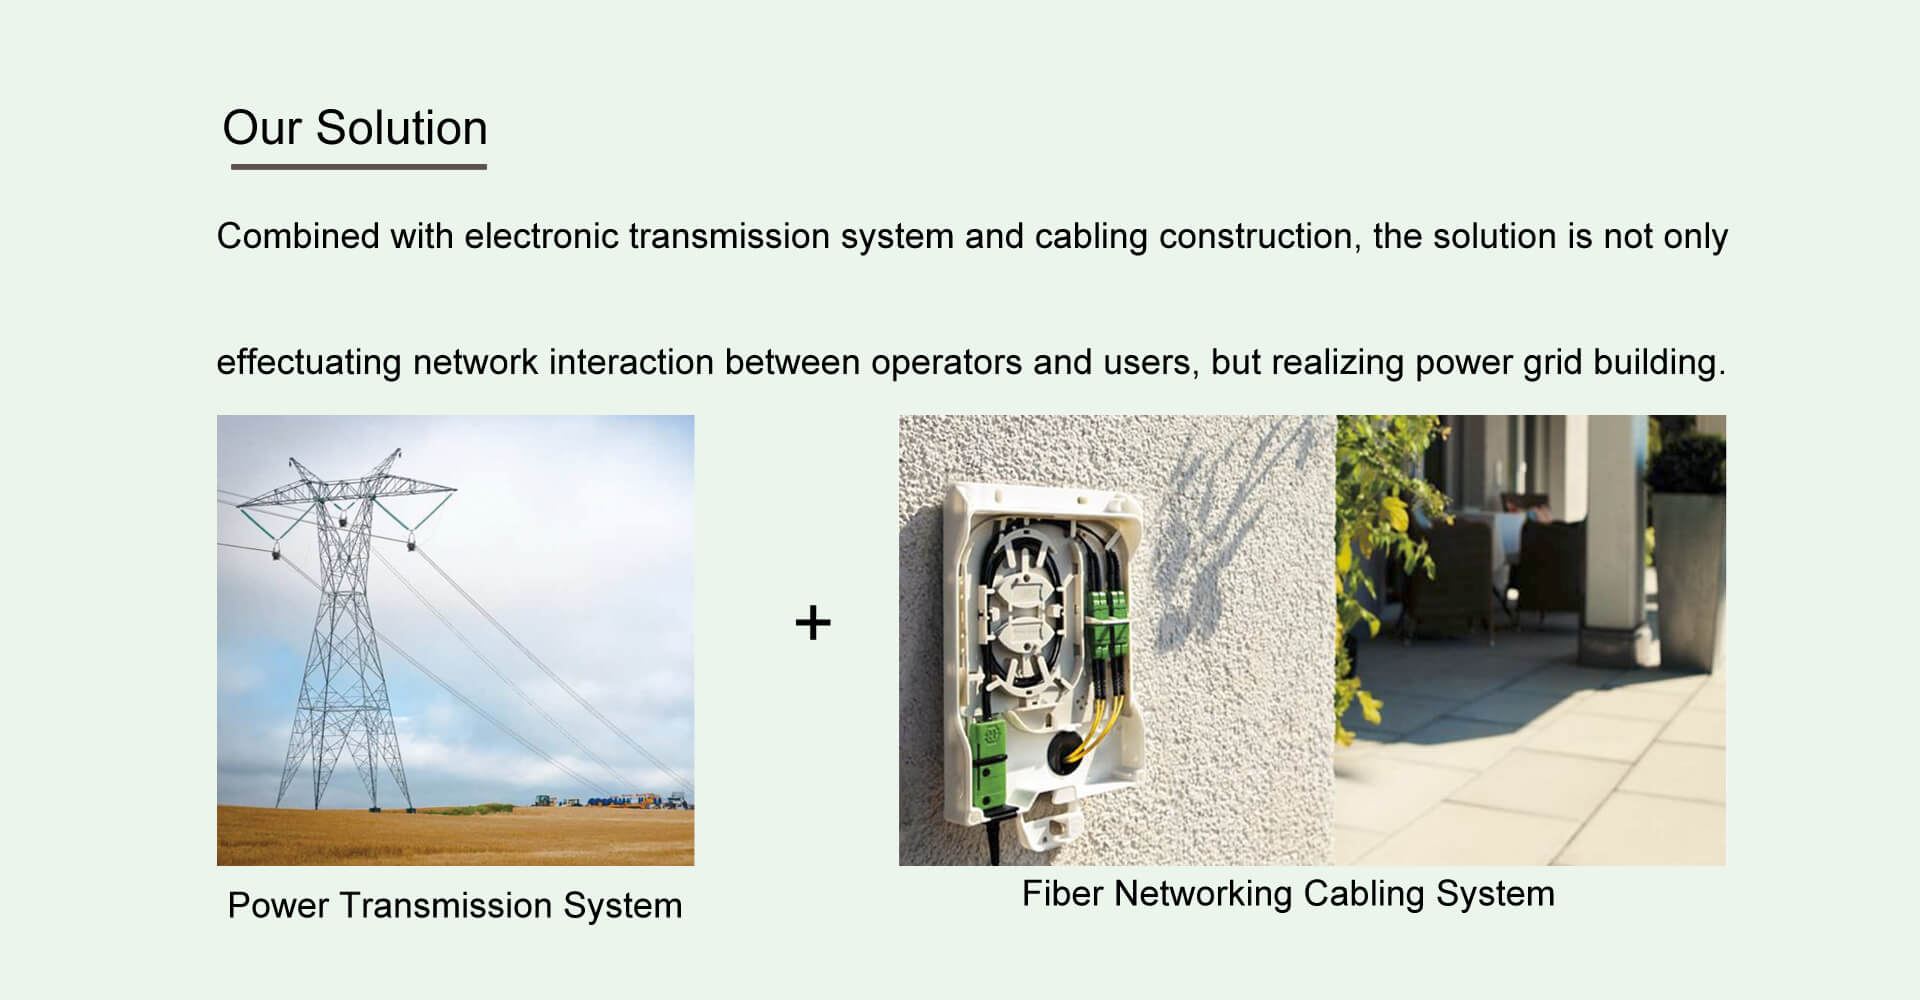 fiber to the home body 003 - FTTH